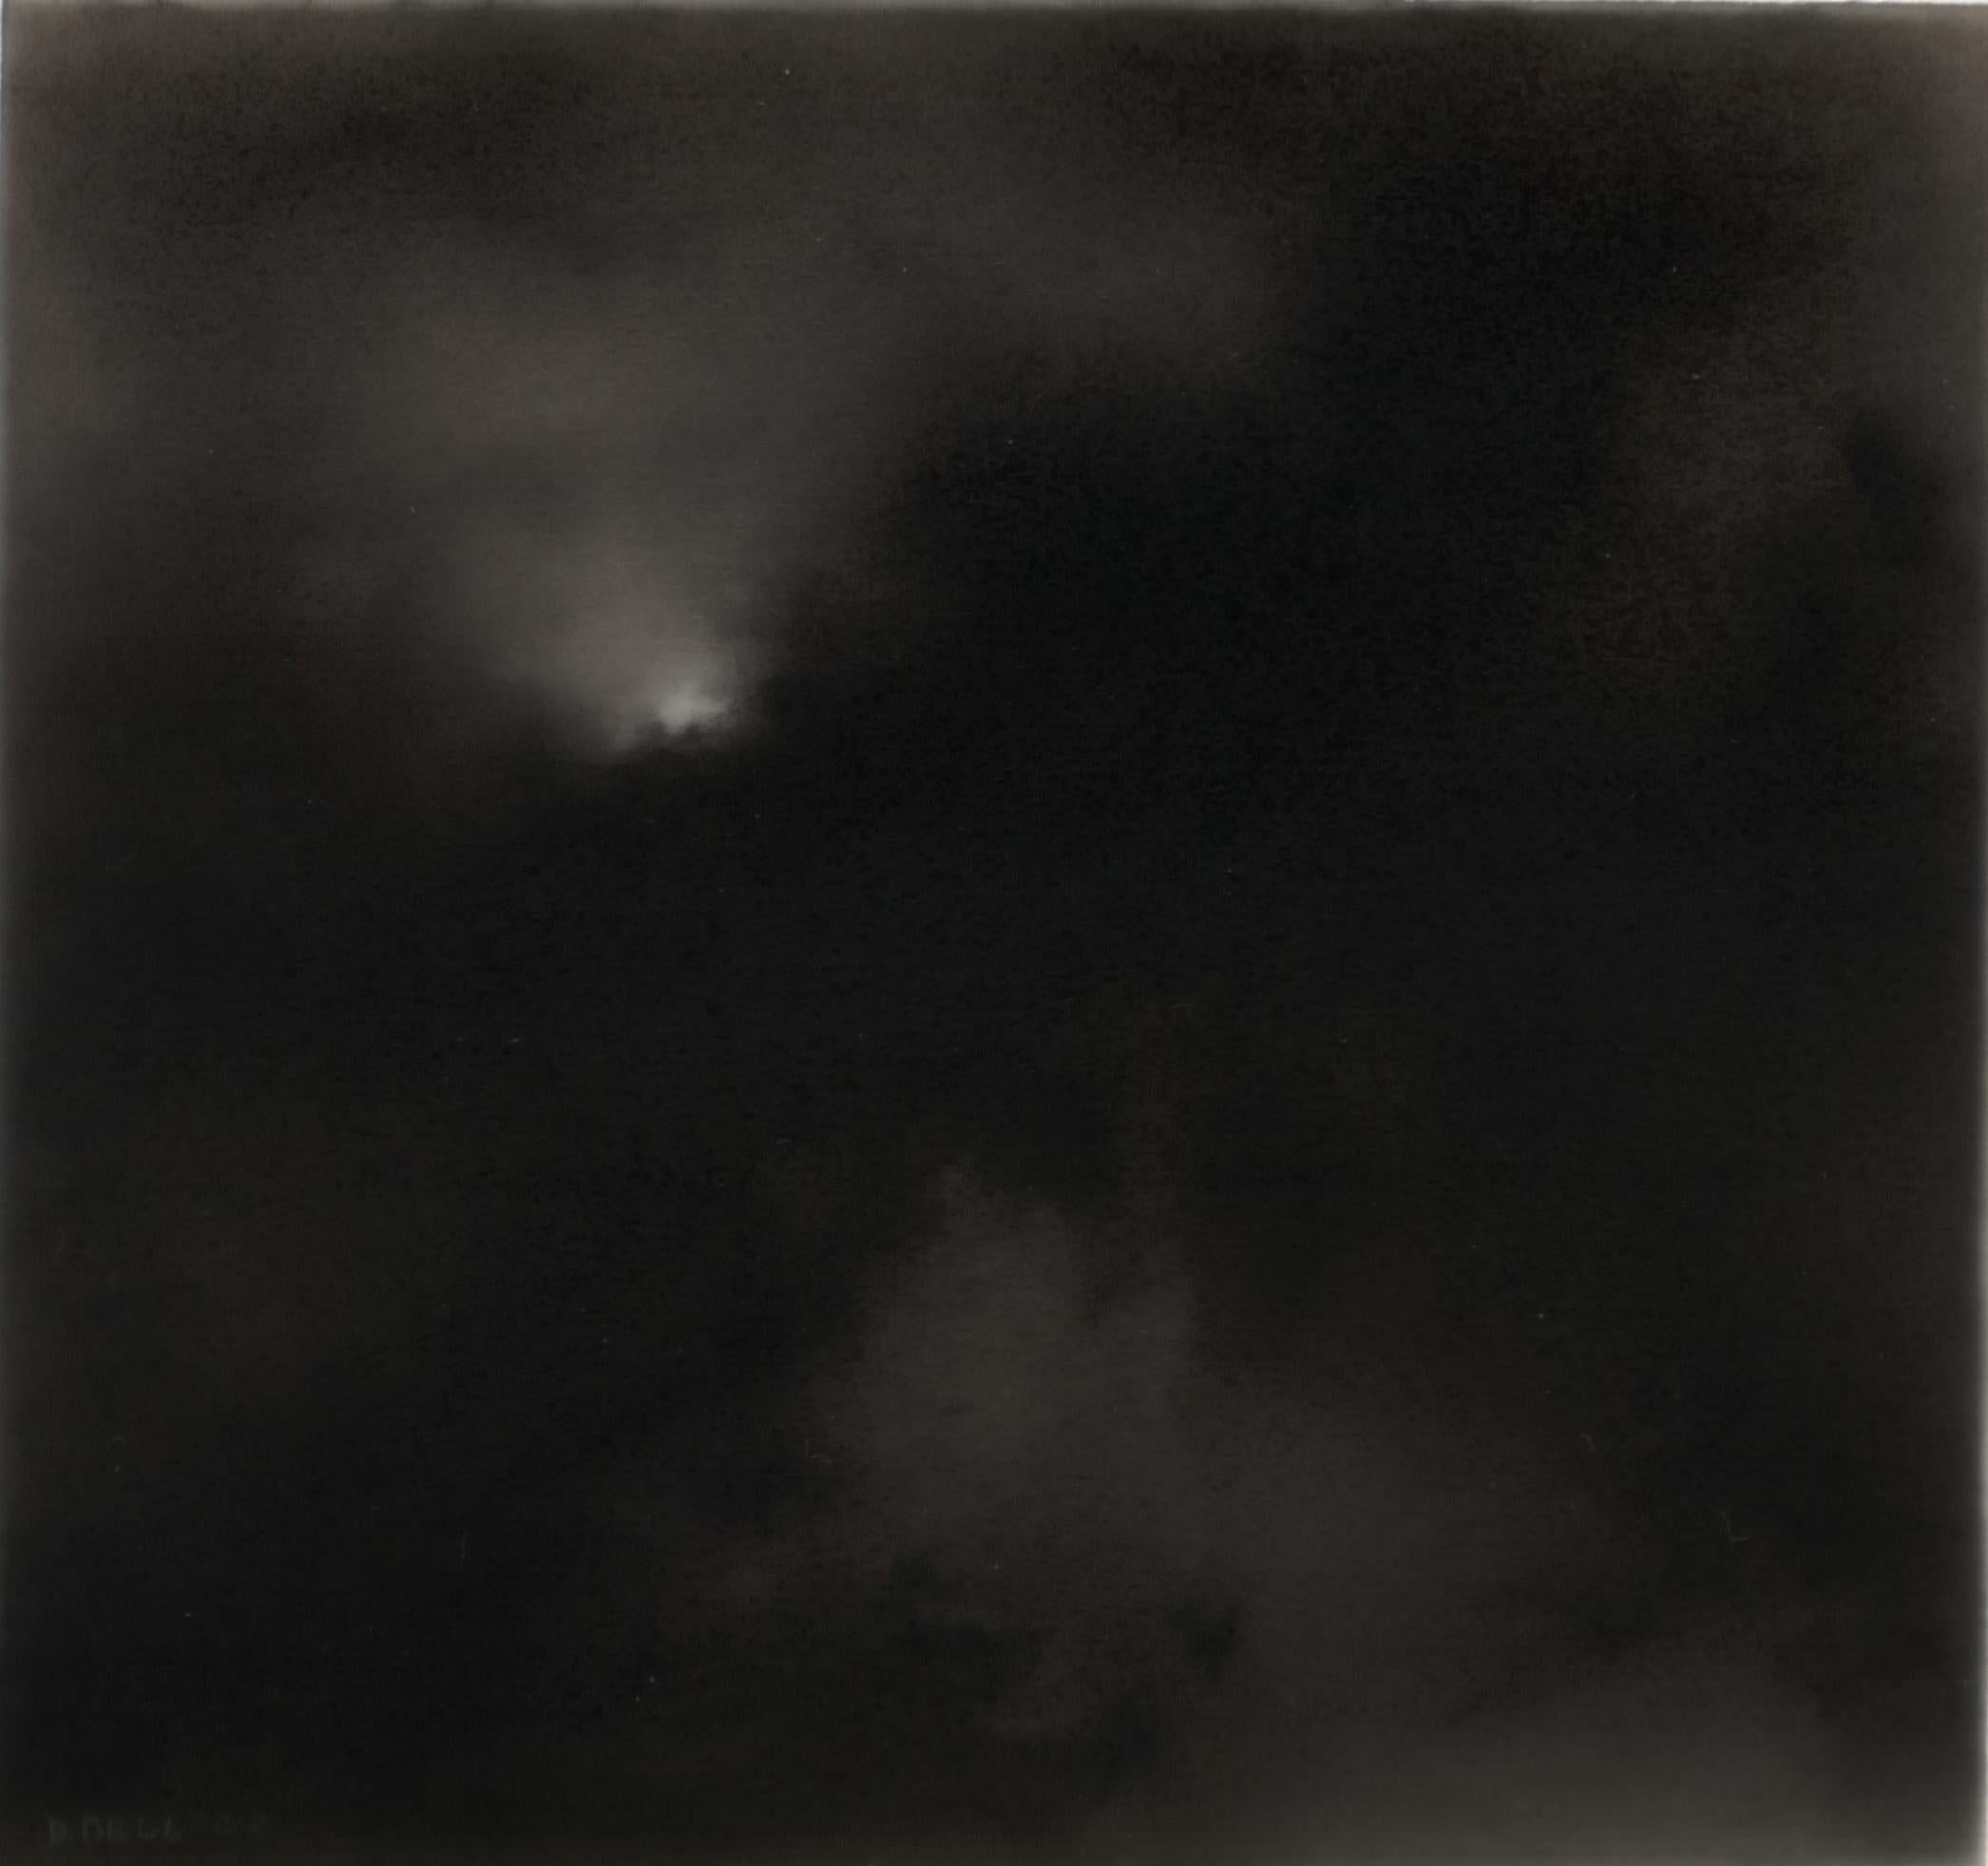 Night wind, 2, realist black and white charcoal landscape drawing